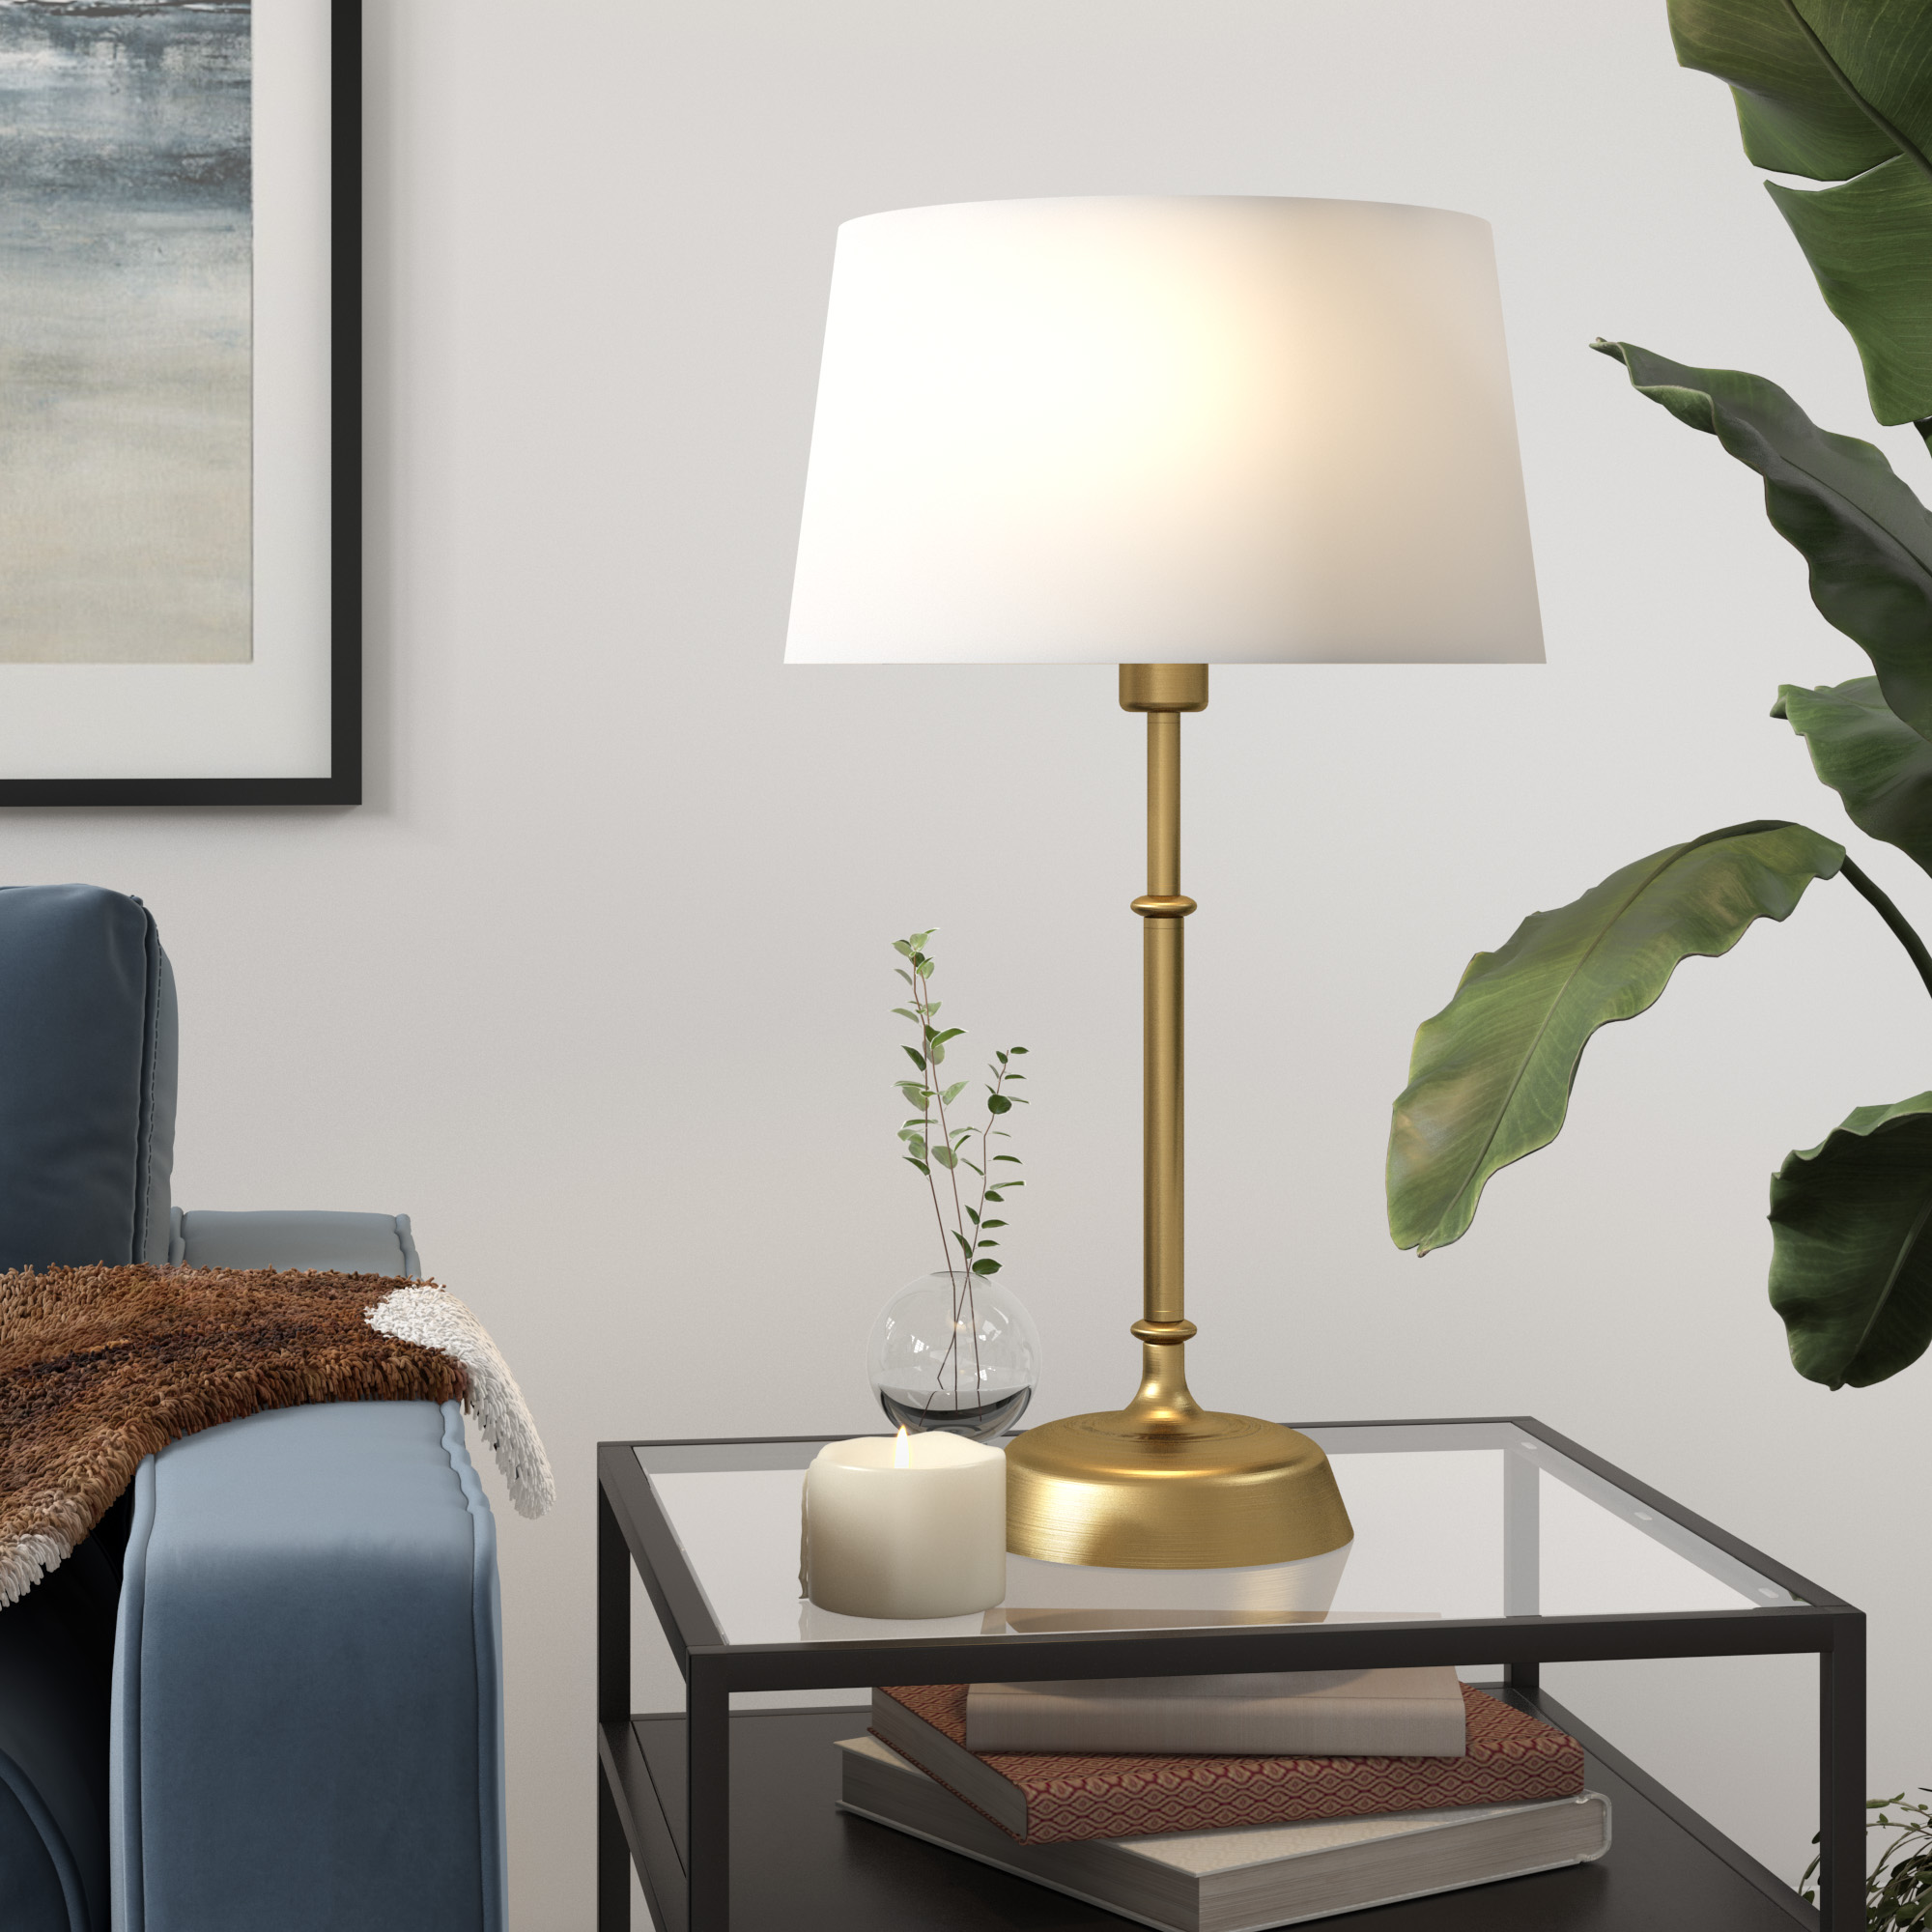 Suissa Table Lamp in Brass